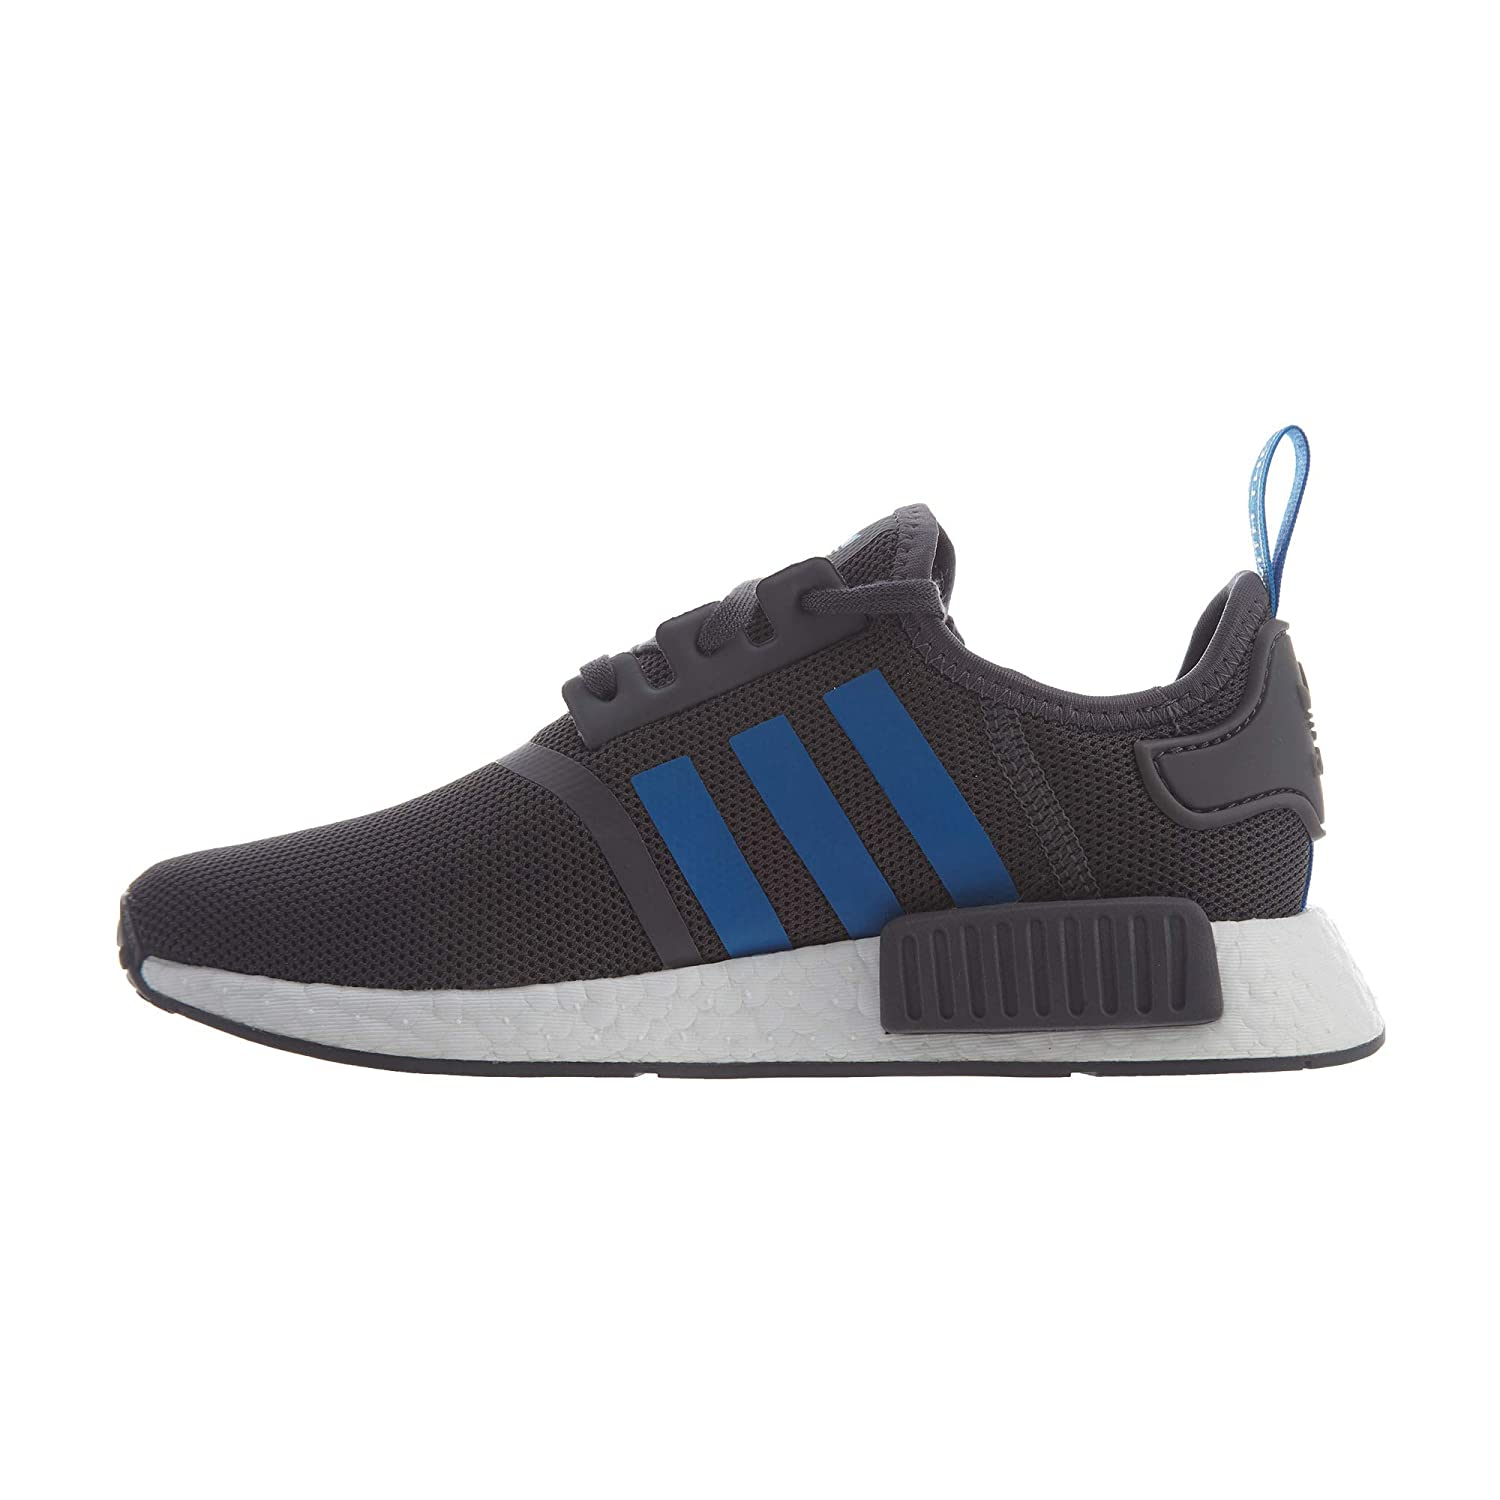 offer discounts clearance prices buying new Adidas Originals NMD_R1 Shoe Junior's Casual 4 Grey-Bright ...